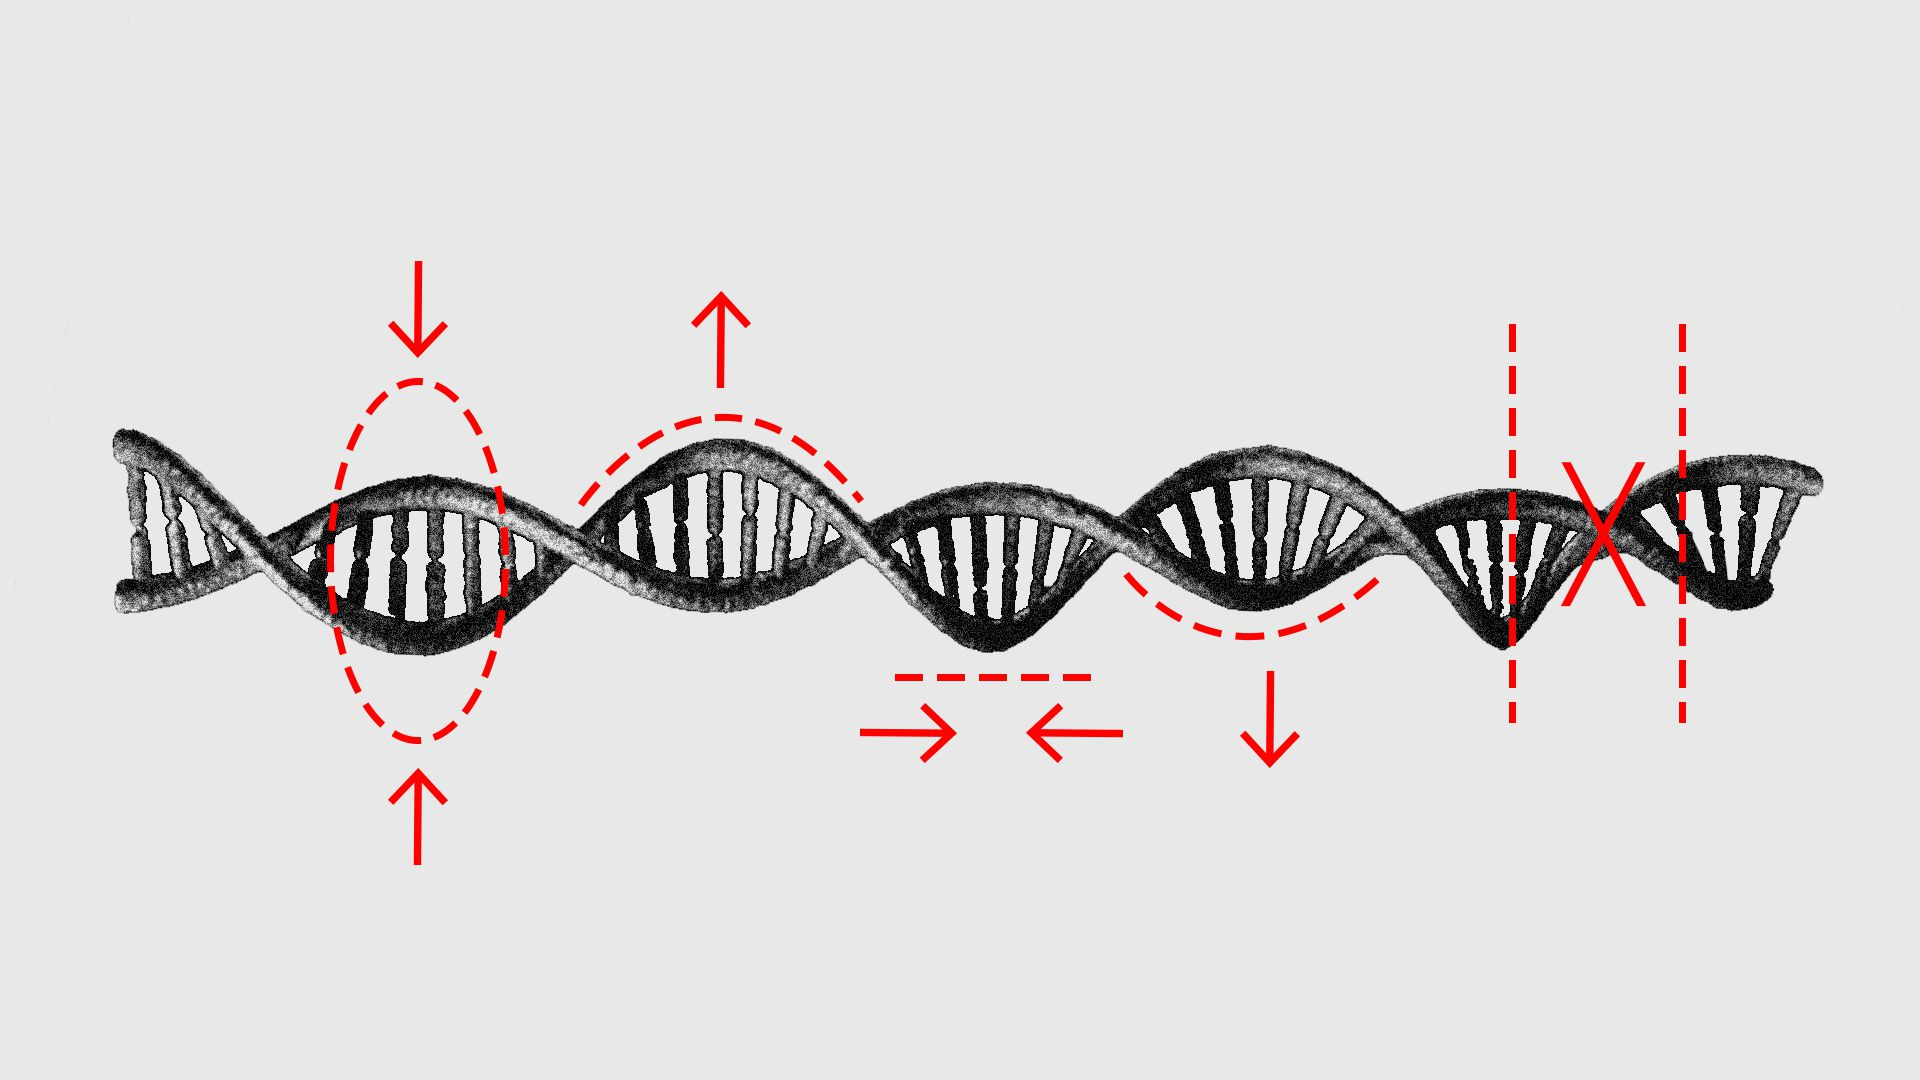 Illustration of DNA molecule with edits.